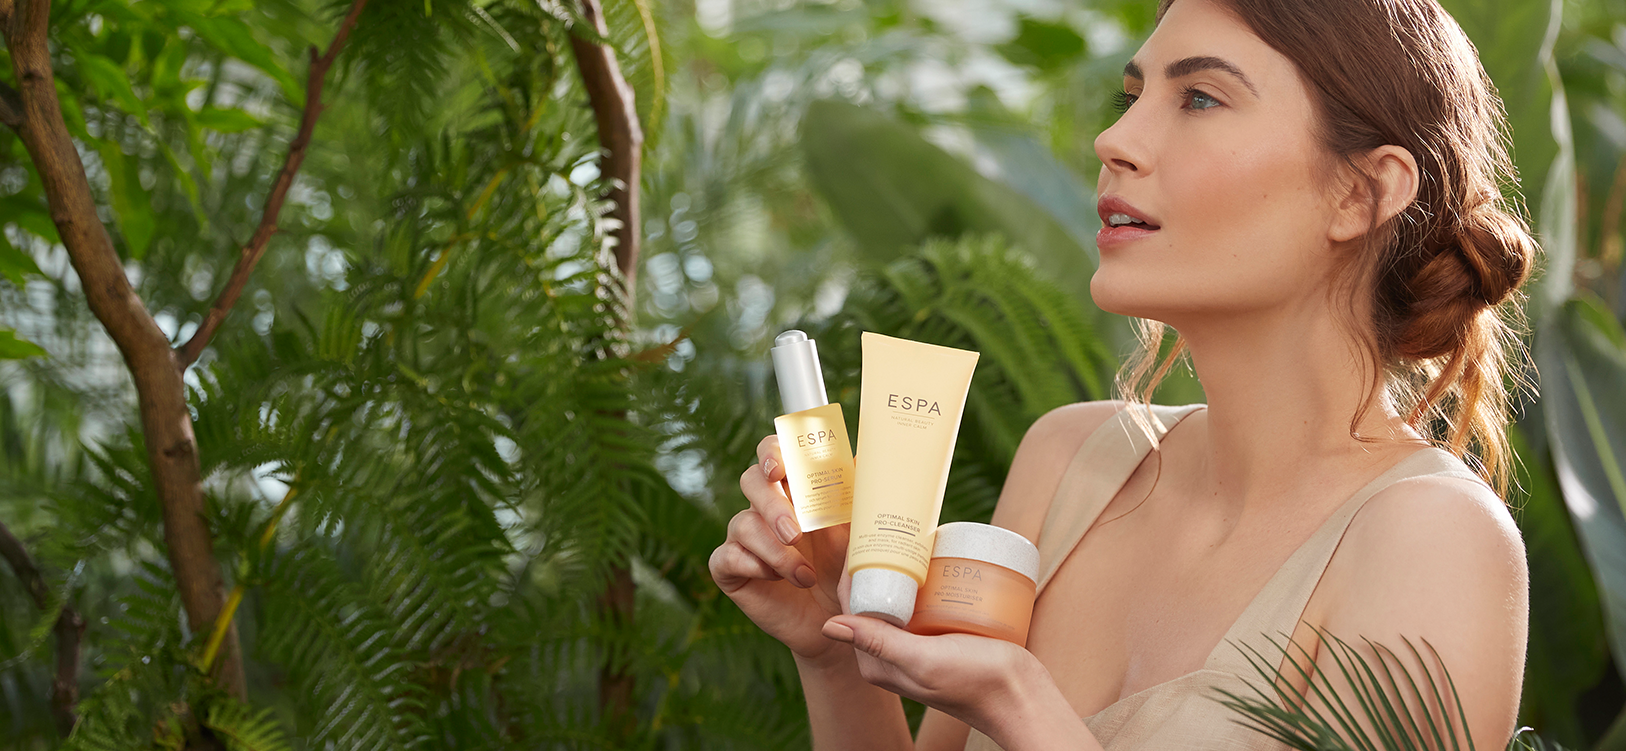 Find your perfect skincare routine with our Skin Consultation quiz, designed by our ESPA experts. Enjoy 15% off when you complete your simple routine or 25% off when you complete your full routine. <br> *Discount Applies at Checkout*